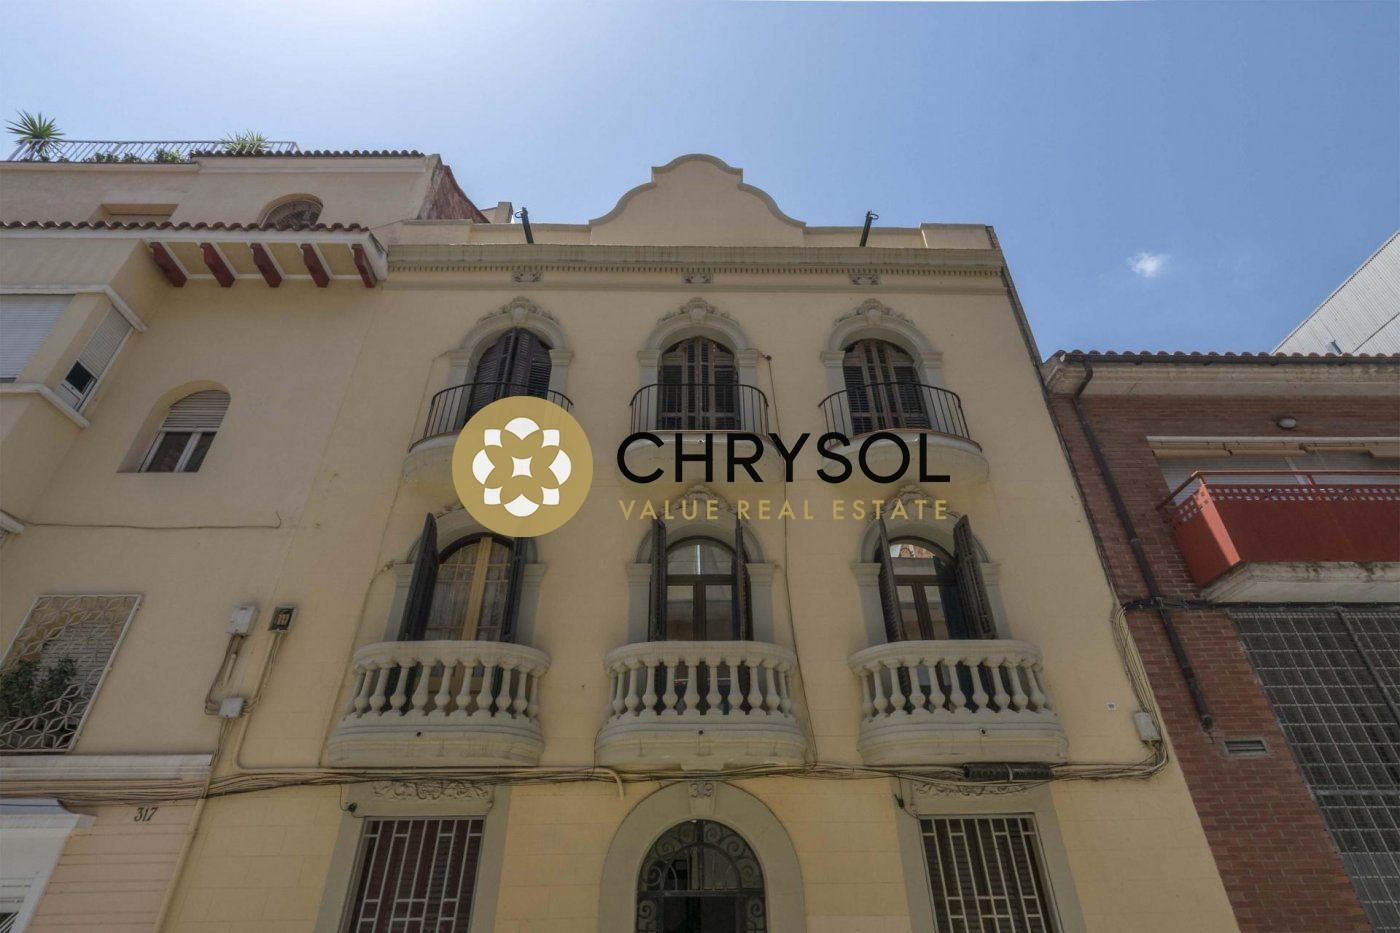 Photogallery - 24 - Chrysol Value